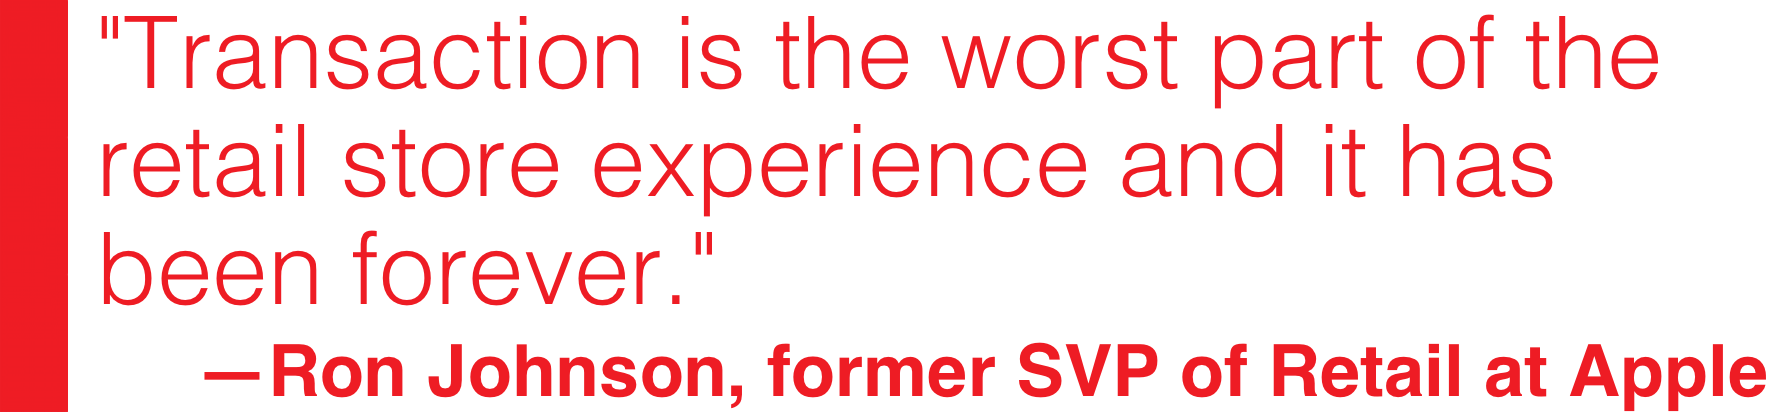 Ron Johnson Quote PNG.png